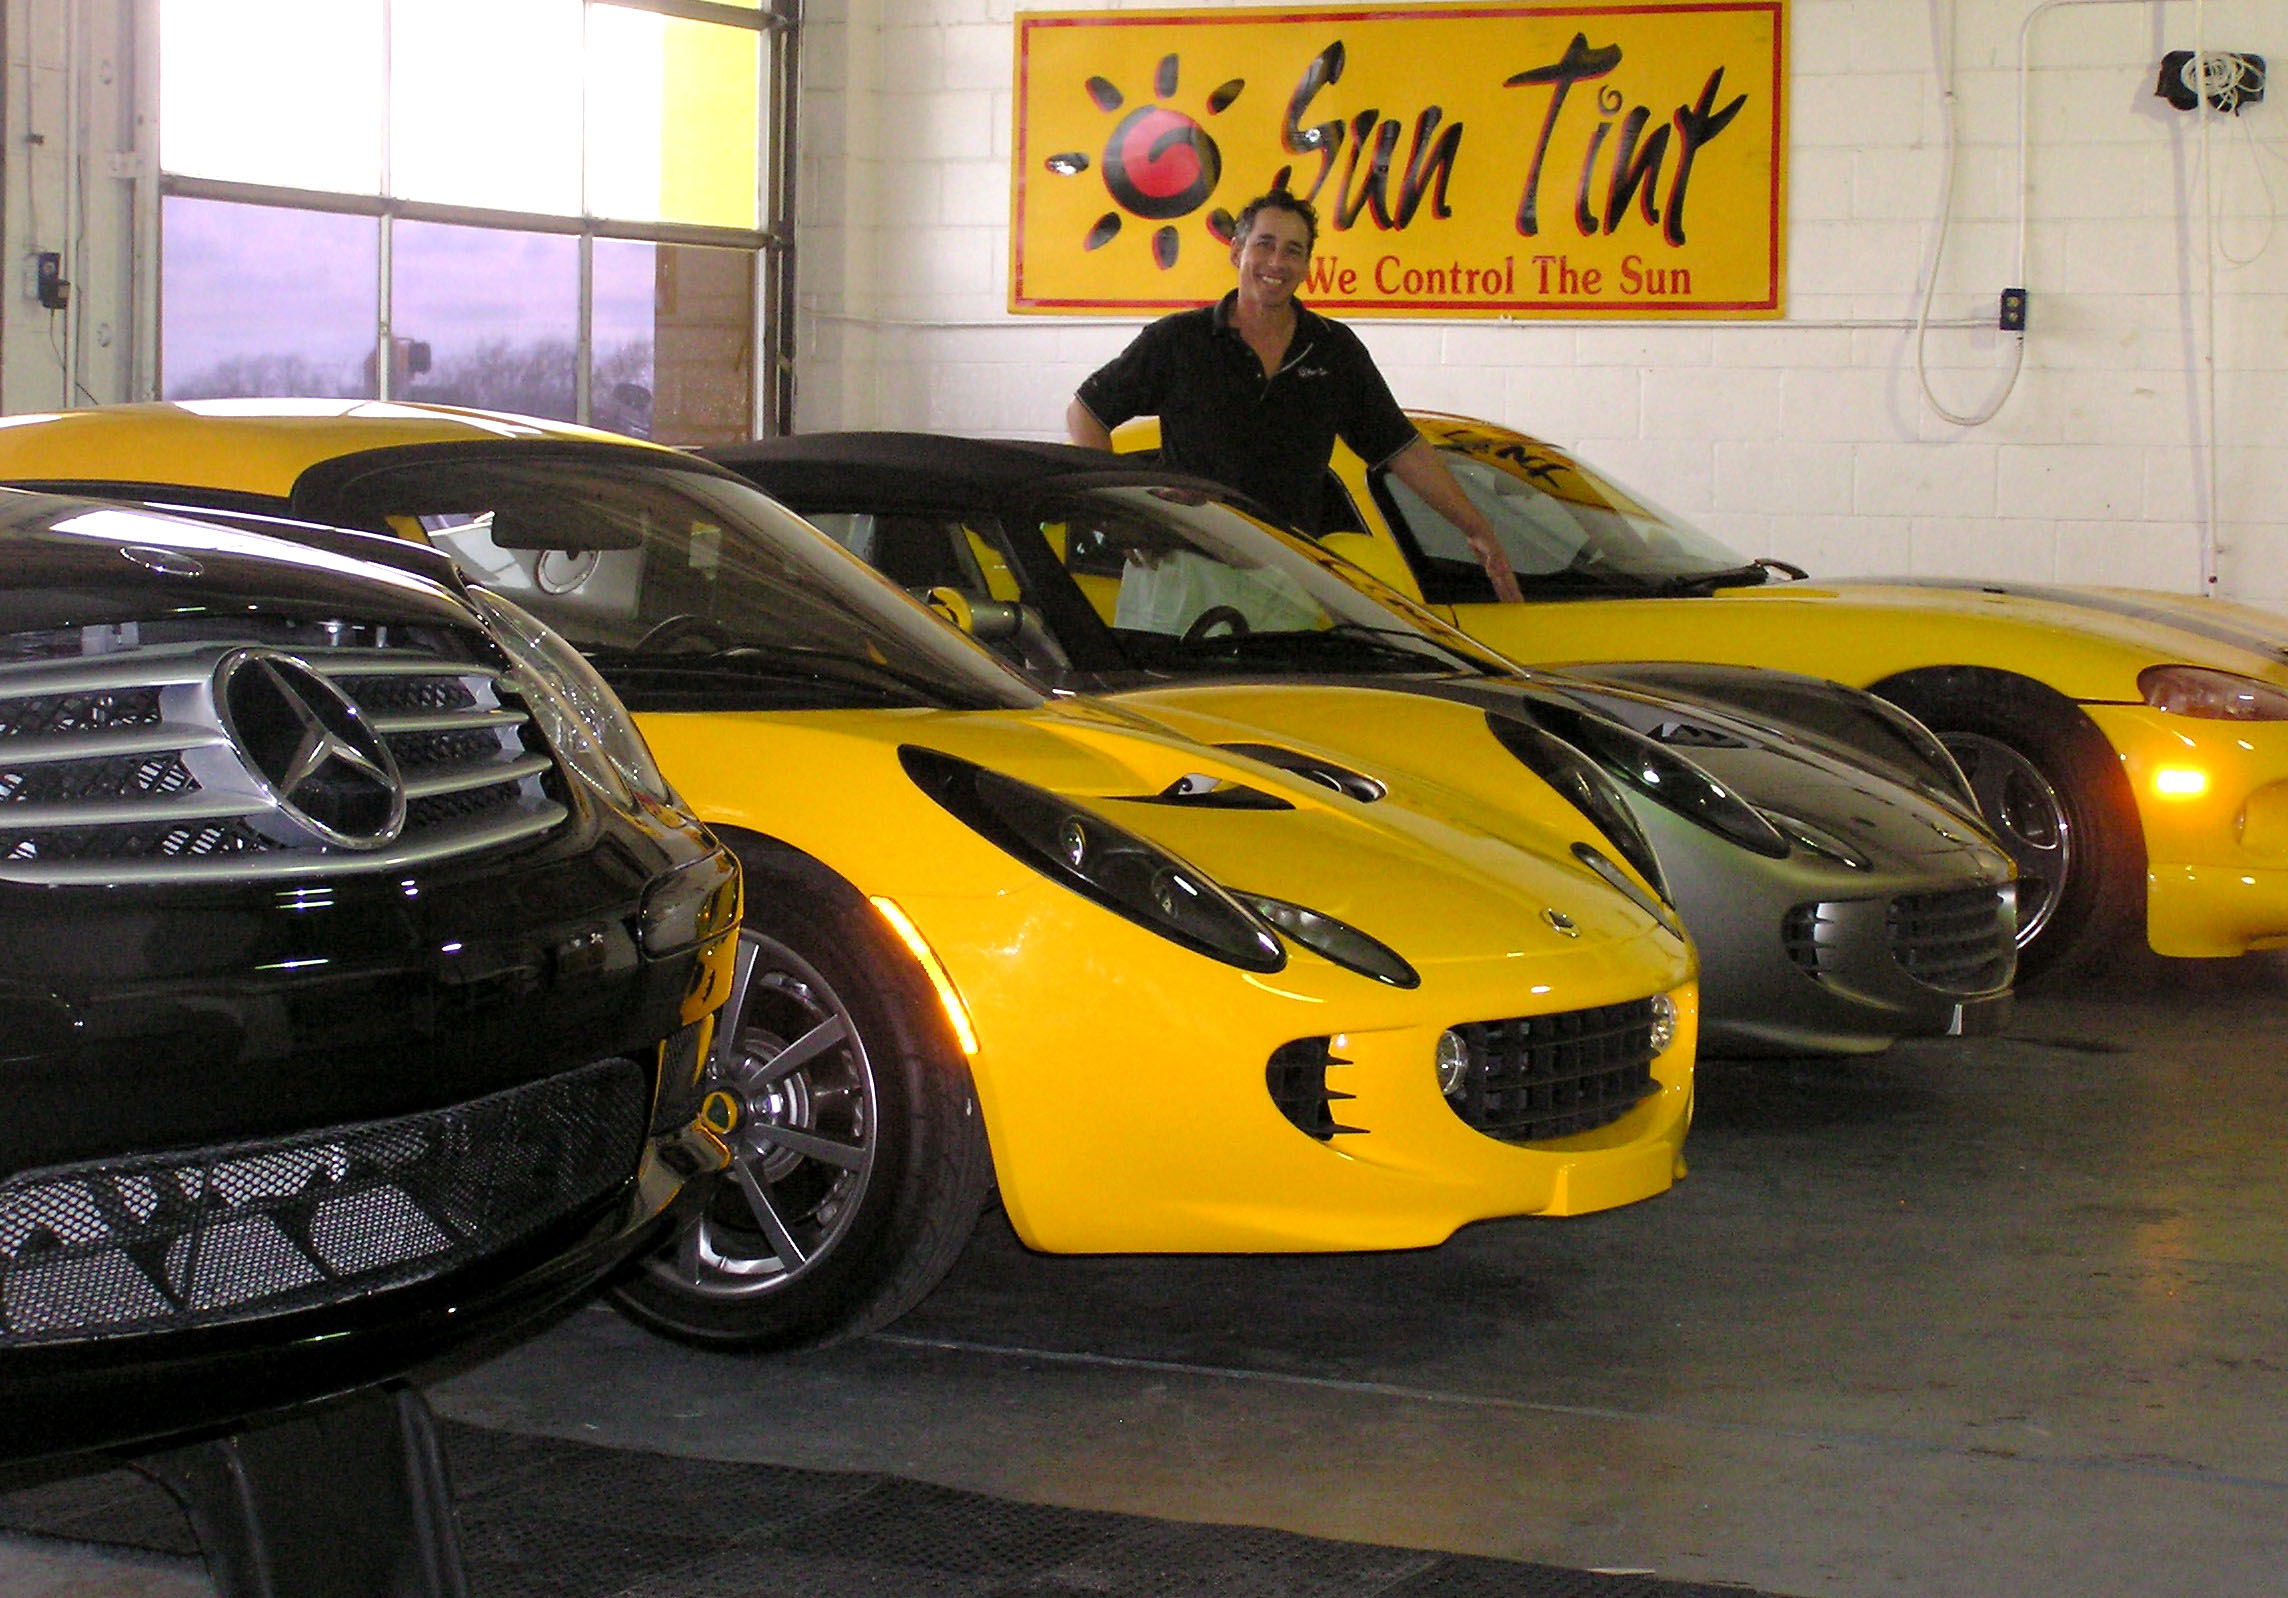 Clear Paint Protection Film Installations… Circa 2001